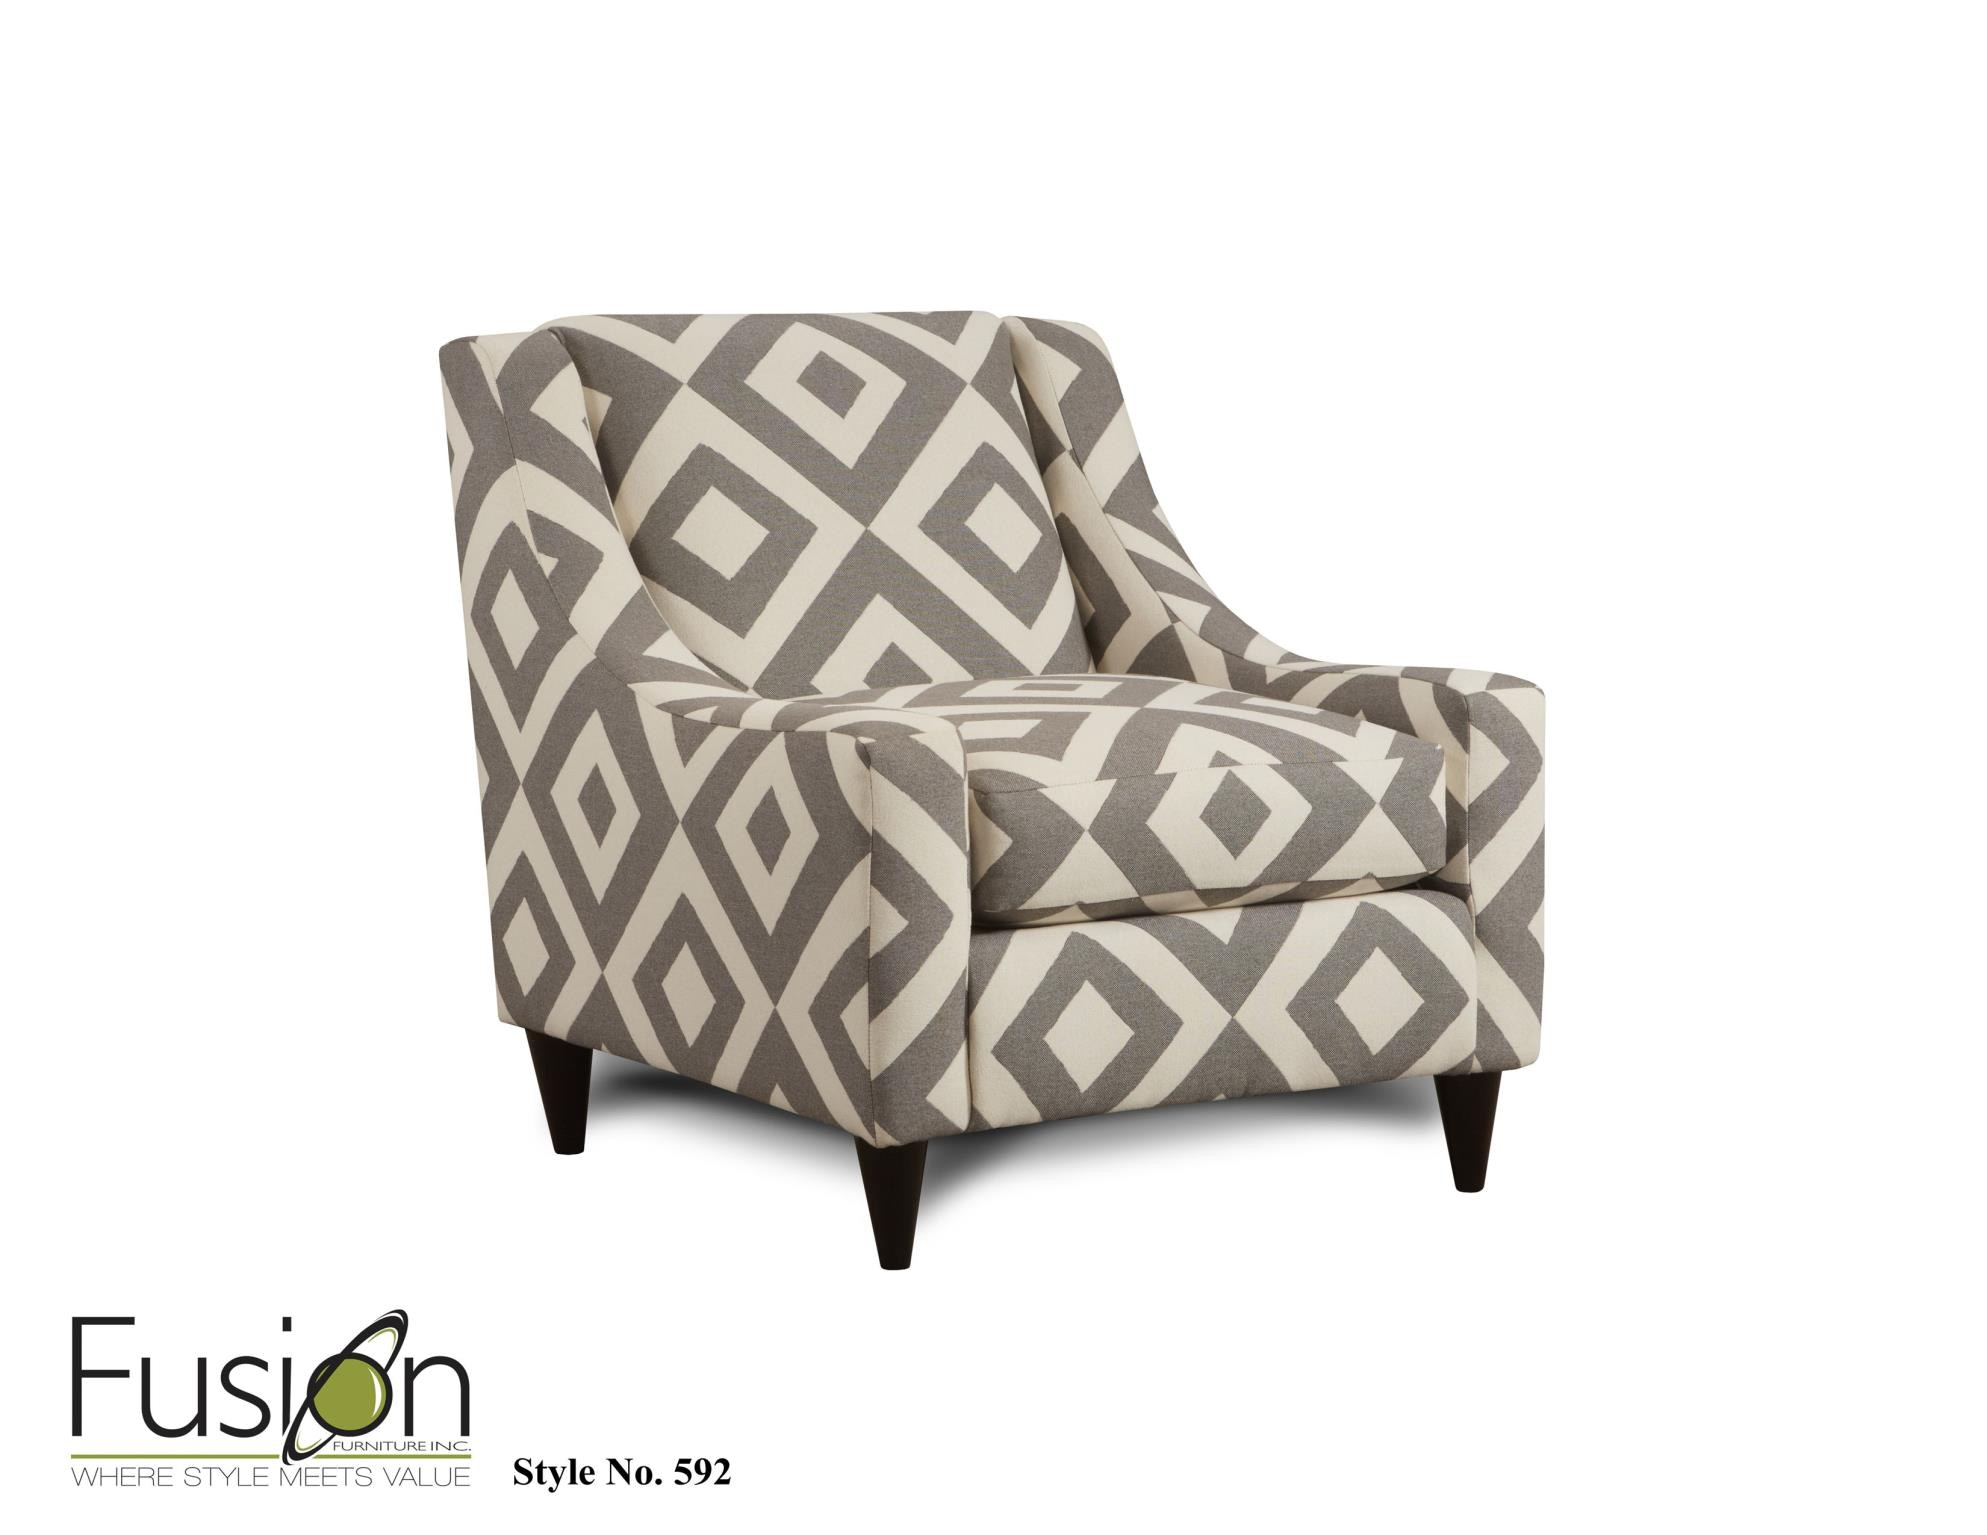 Fusion Living Room Chair 592Square Charcoal At Priba Furniture And Interiors